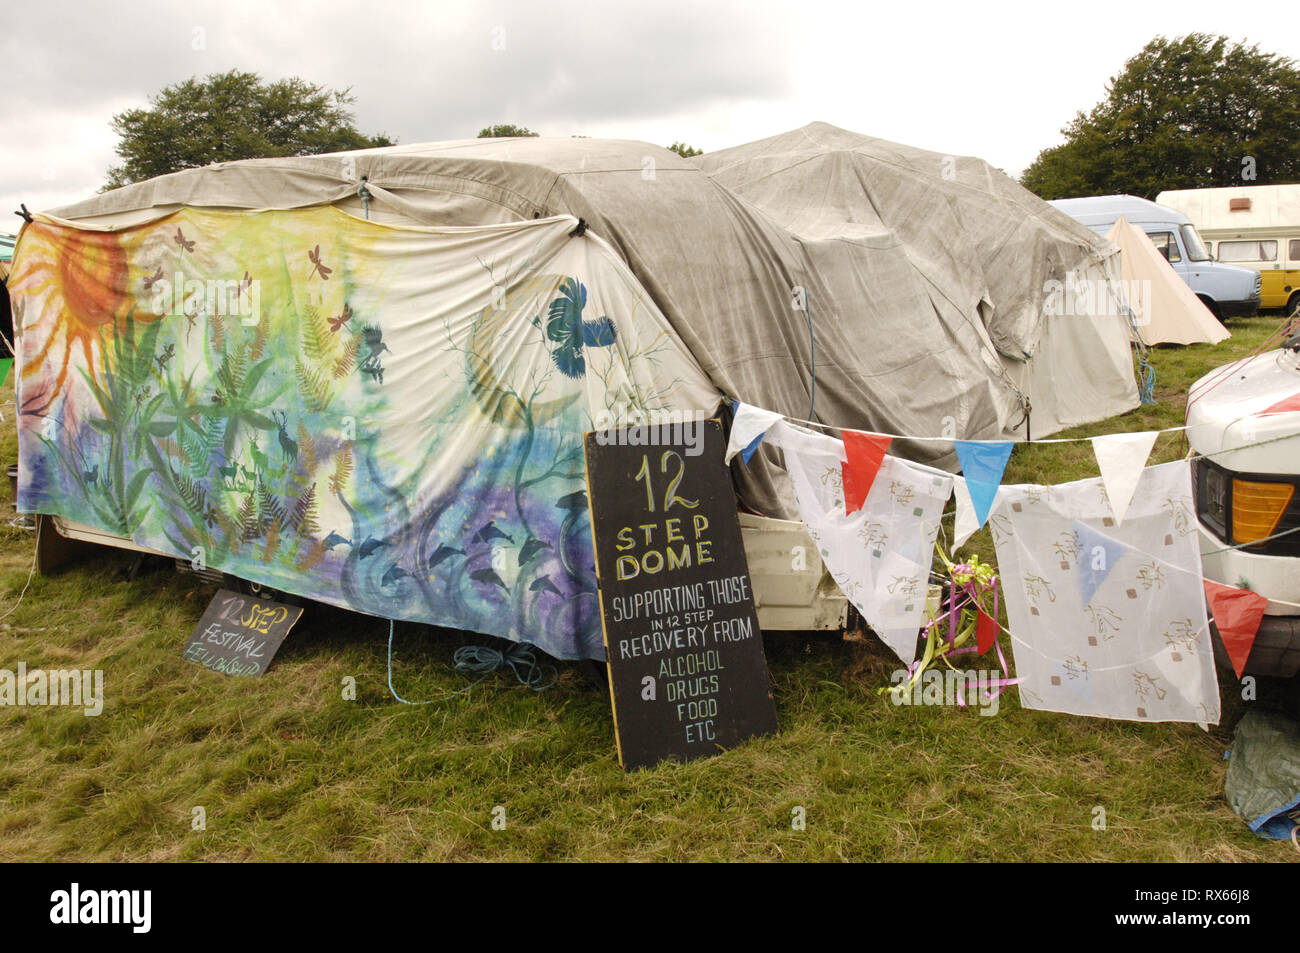 A caravan converted into a temporary rehabilitation centre called the 12 step dome, Big Green Gathering, UK August 2005 - Stock Image